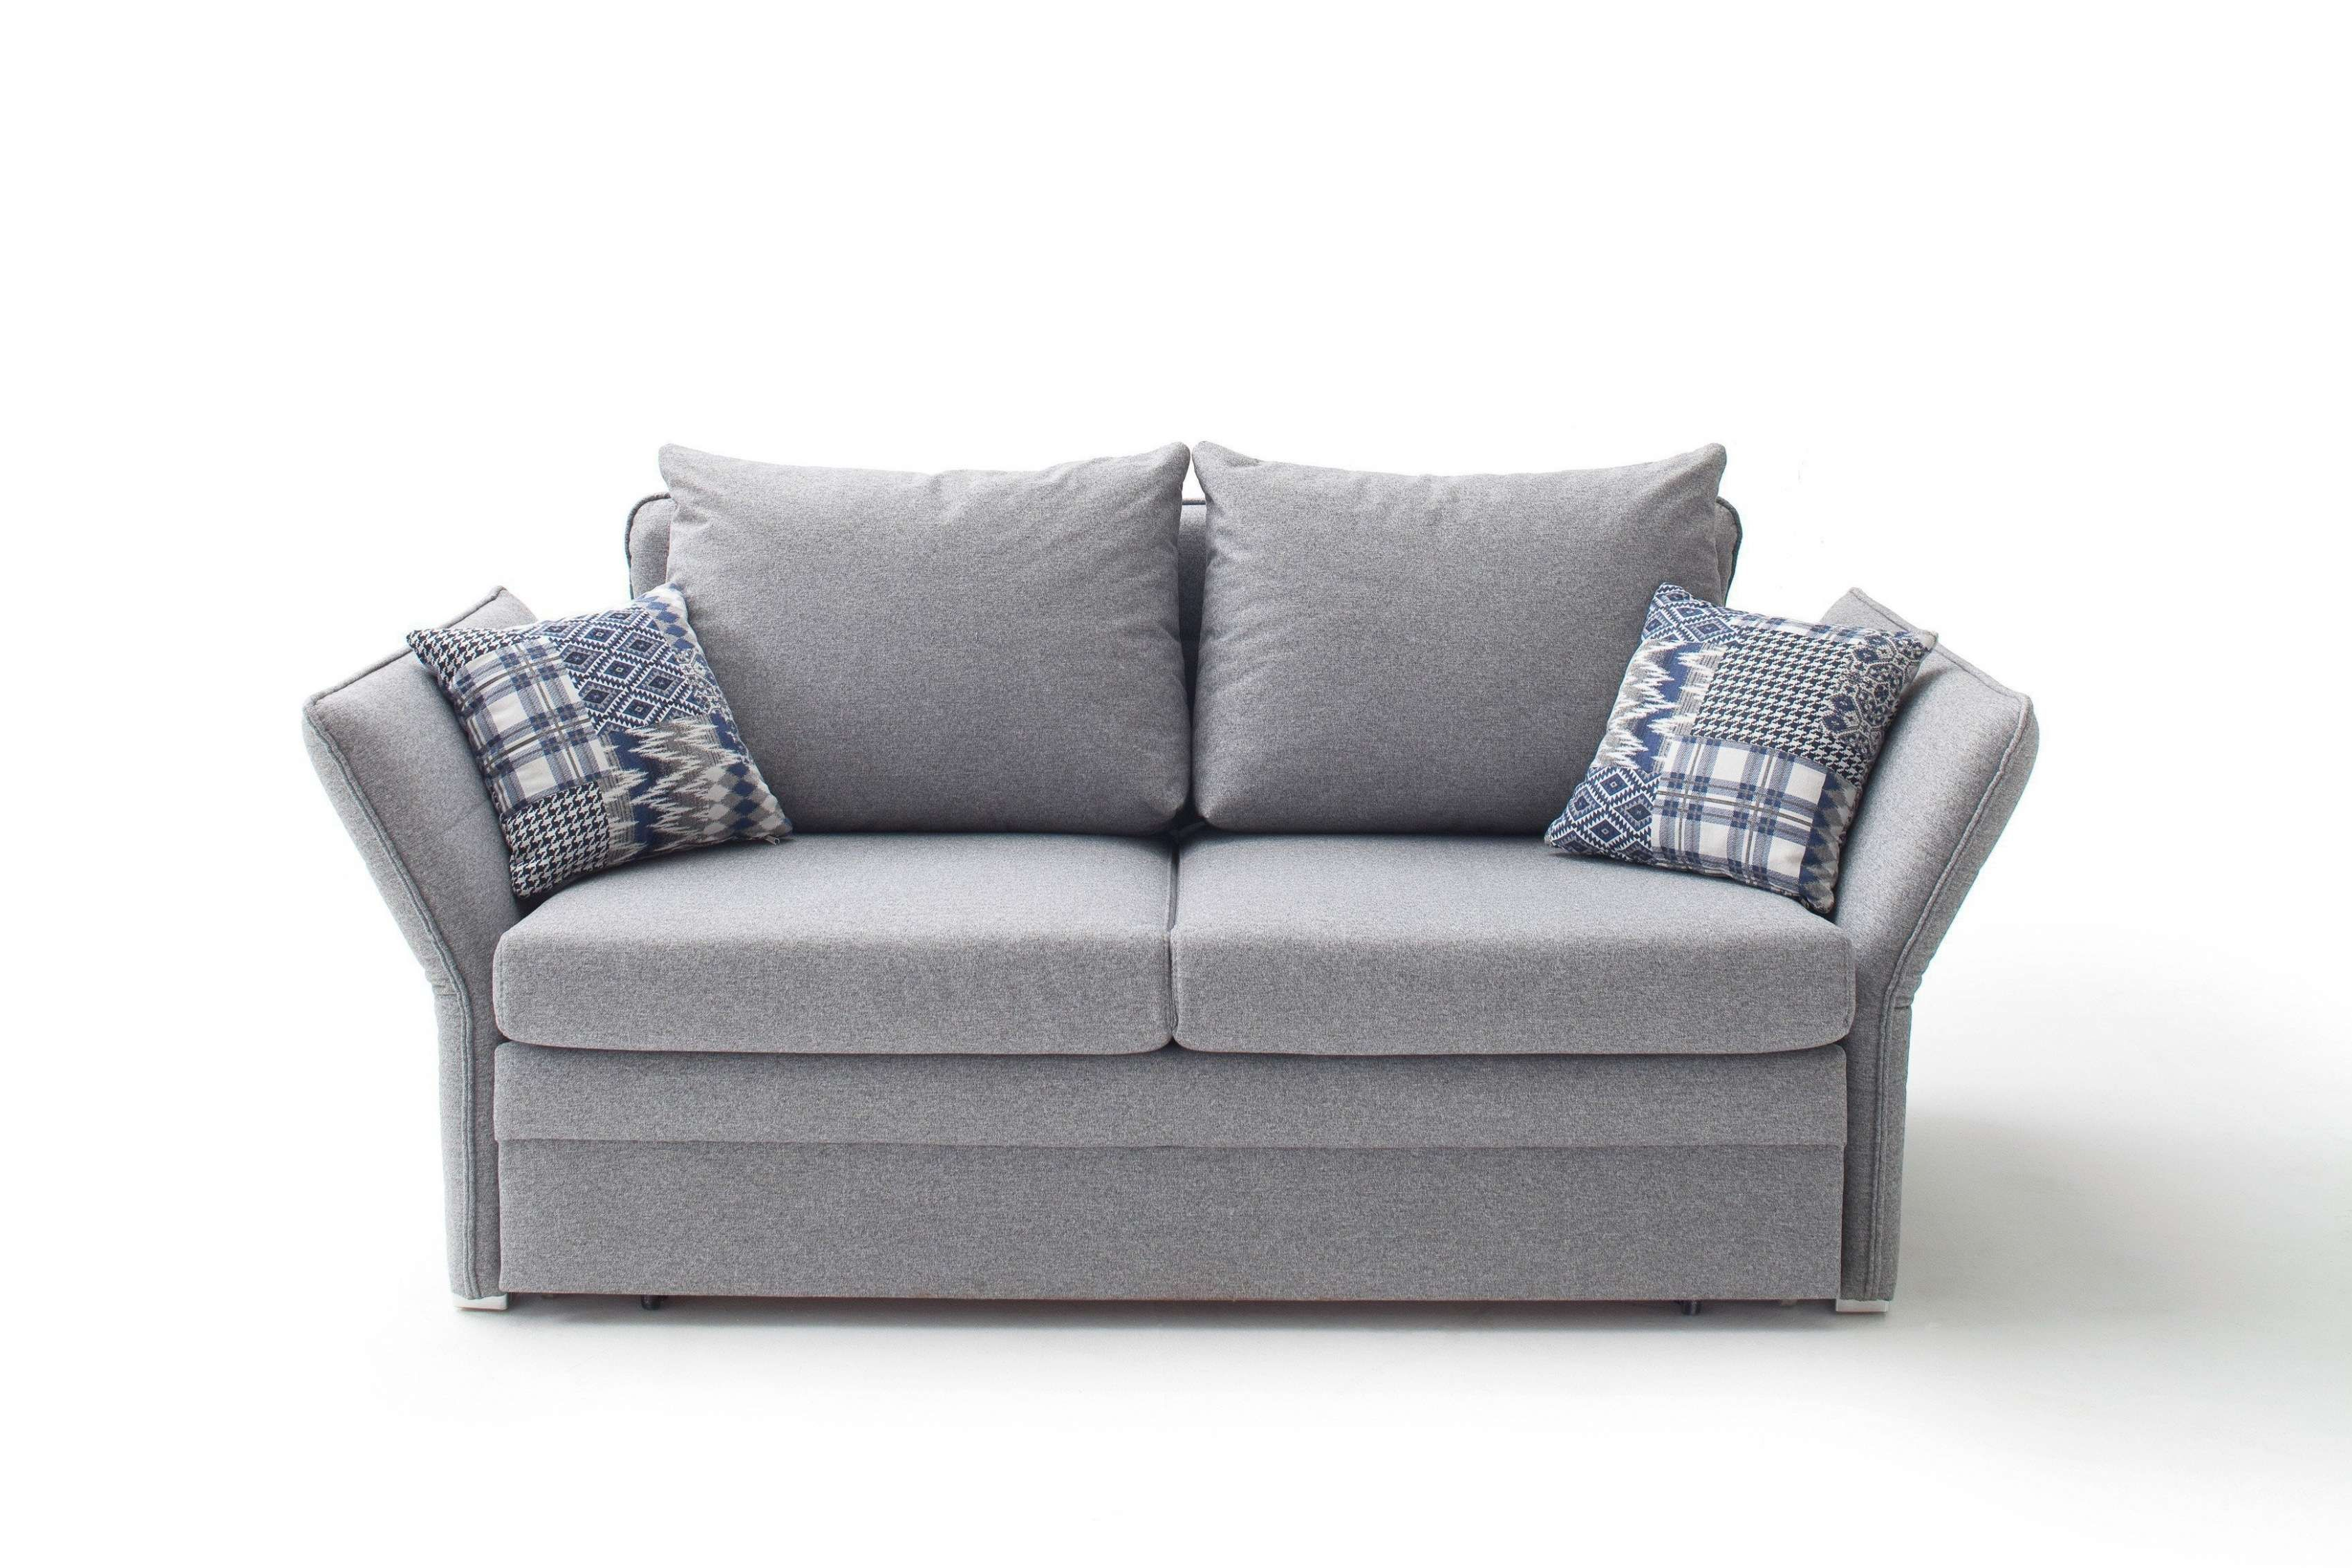 Ecksofa Leder Gunstig Ecksofa Gunstig Poco Elegant 28 Gunstig Sofa Stock Schlafsofa In 2020 Furniture Love Seat Decor